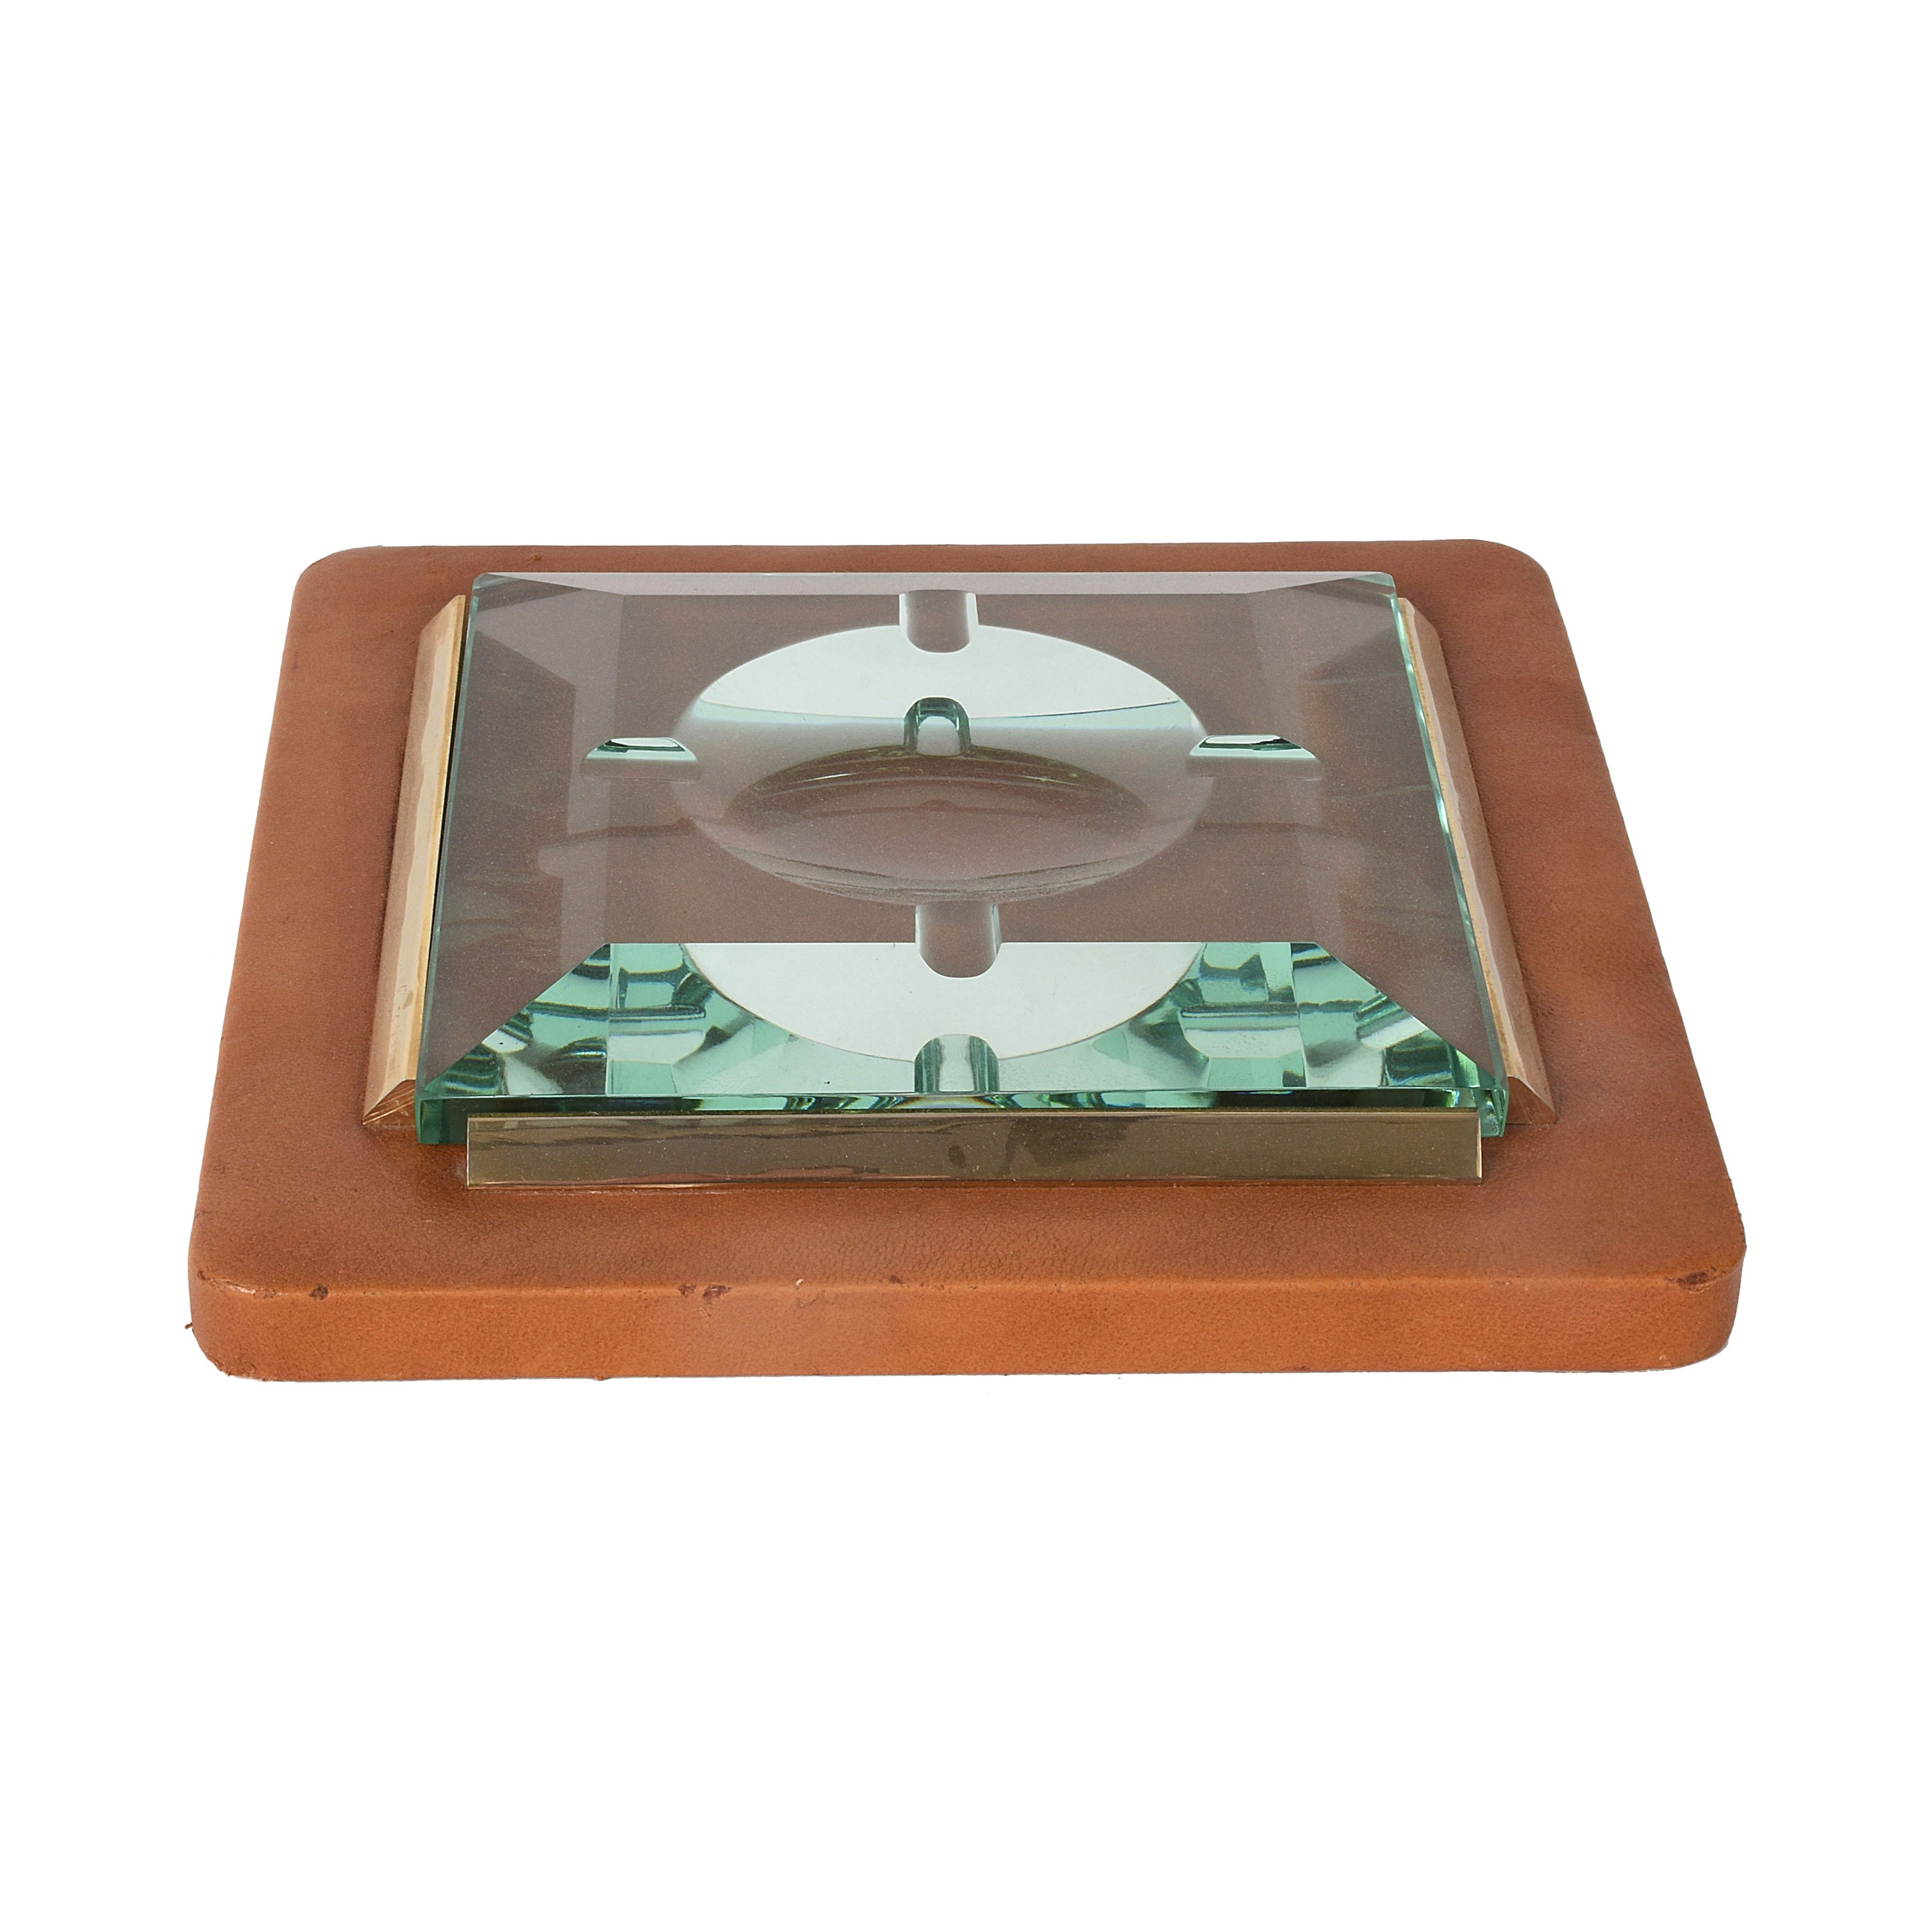 Fontana Arte 1970s, Ashtray in Leather, Brass and Faceted Glass, Italy Art Glass